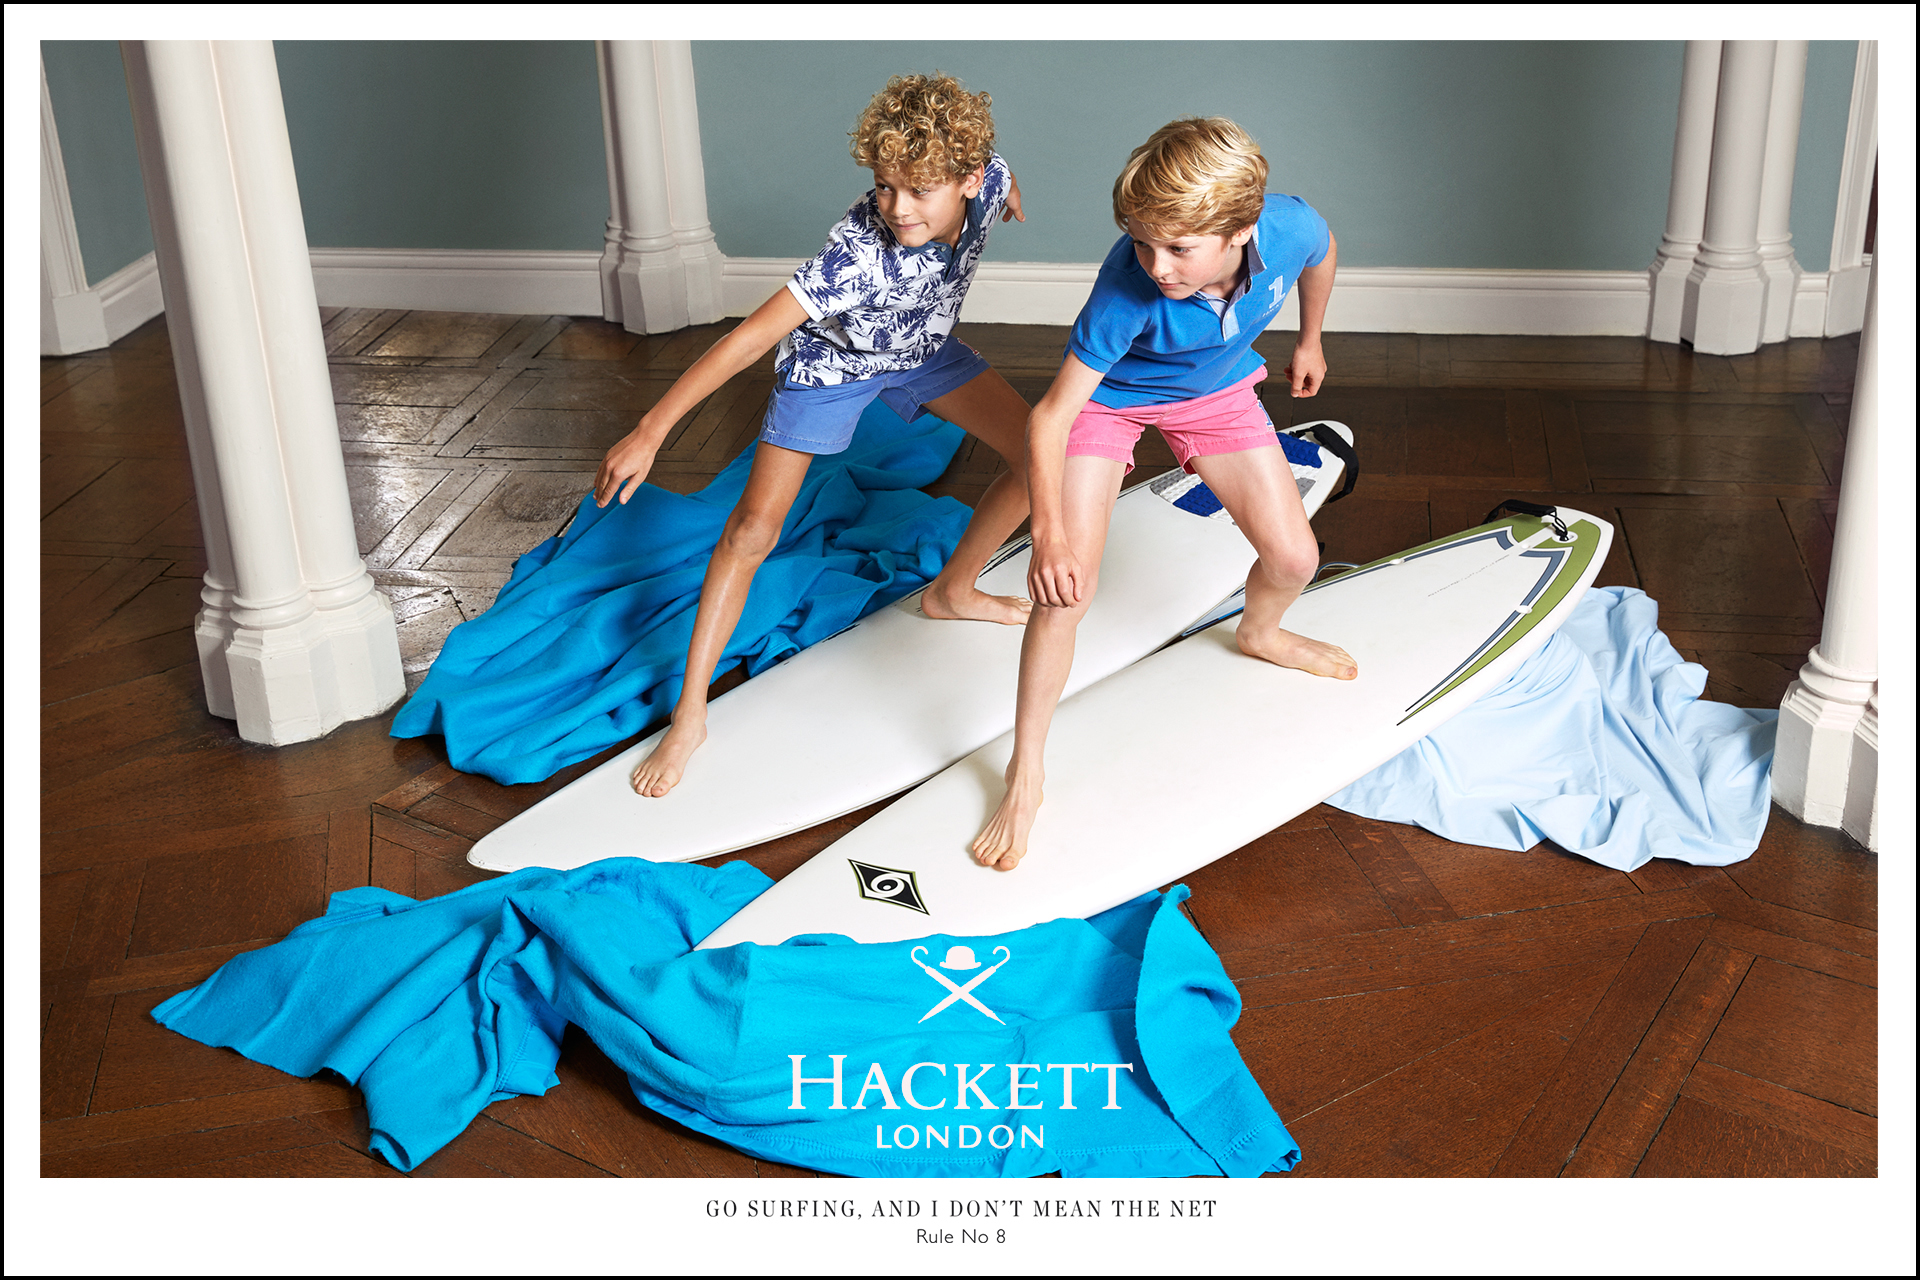 Hackett kids fashion campaign Rules for boys 5